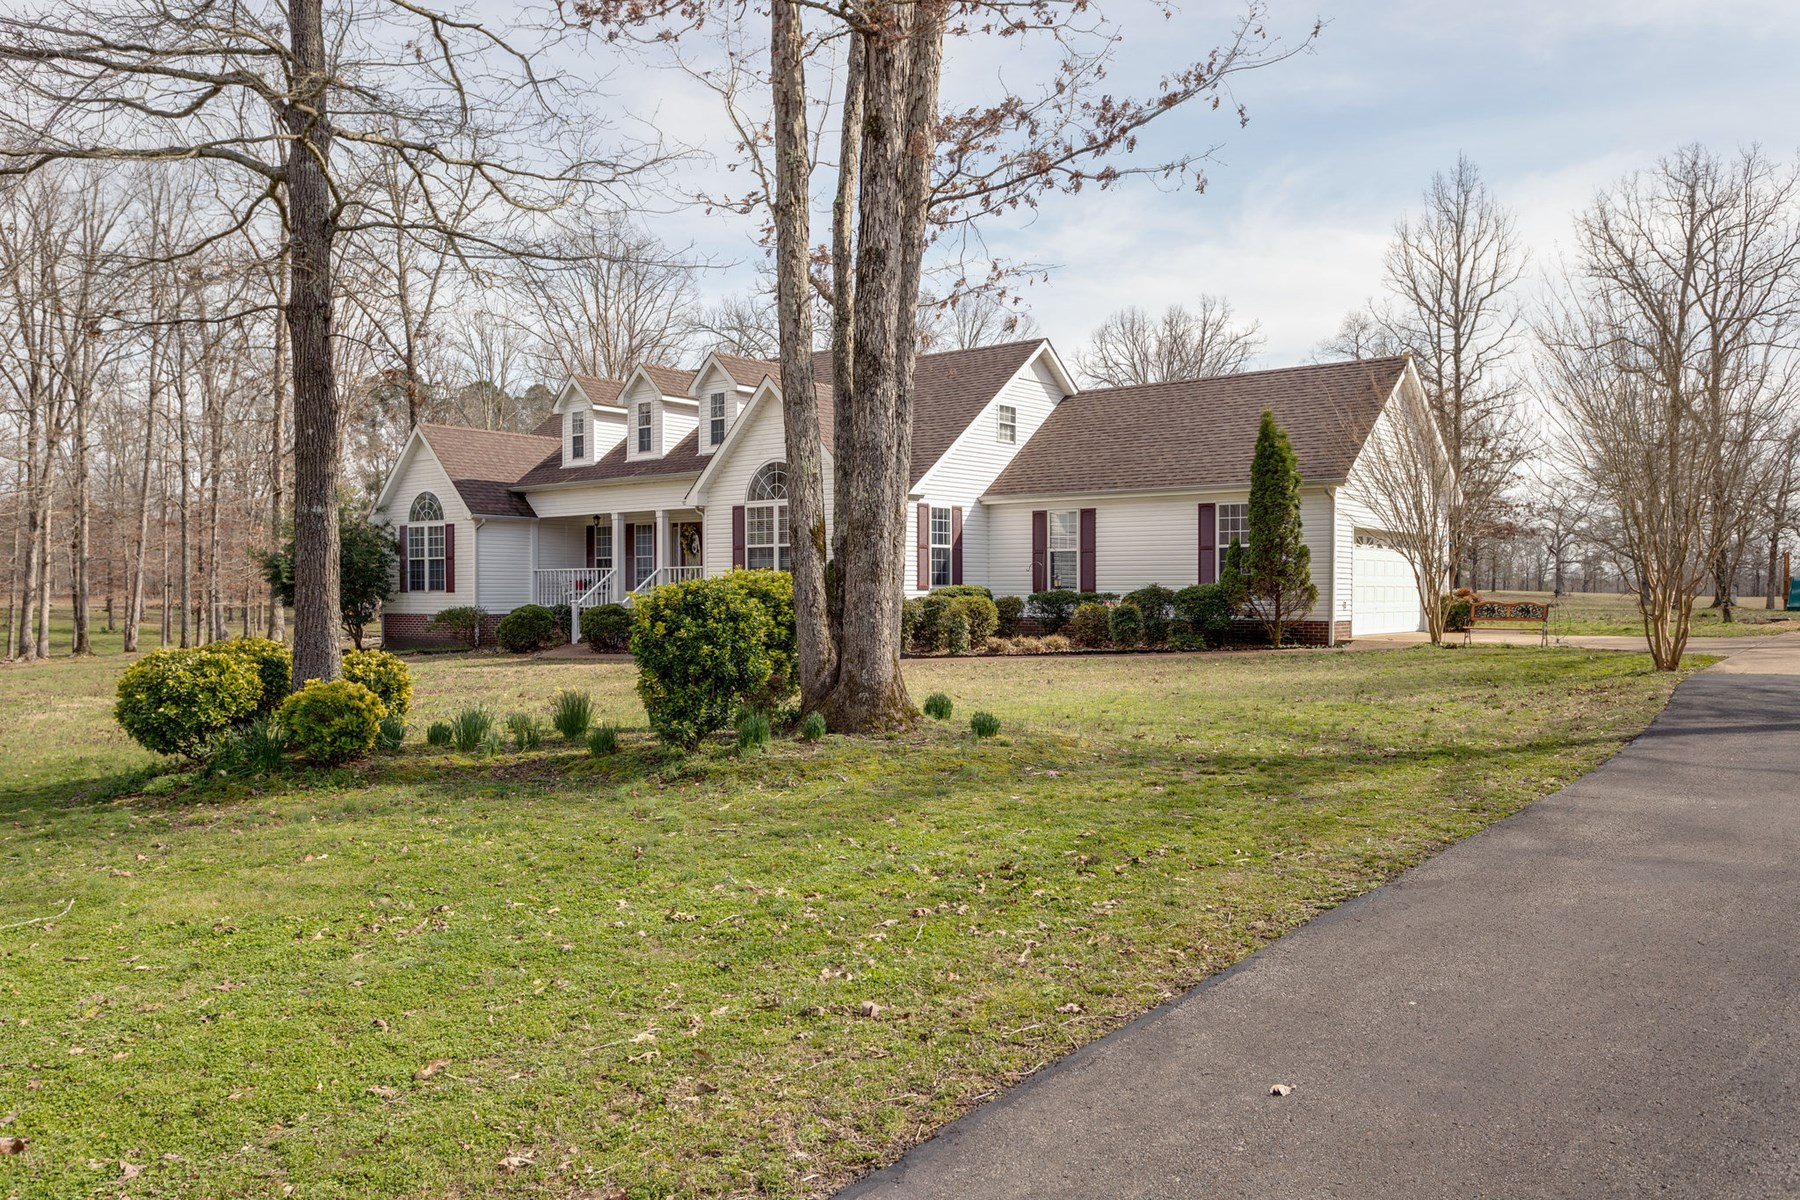 Country home for sale, Lewis County, Hohenwald, TN